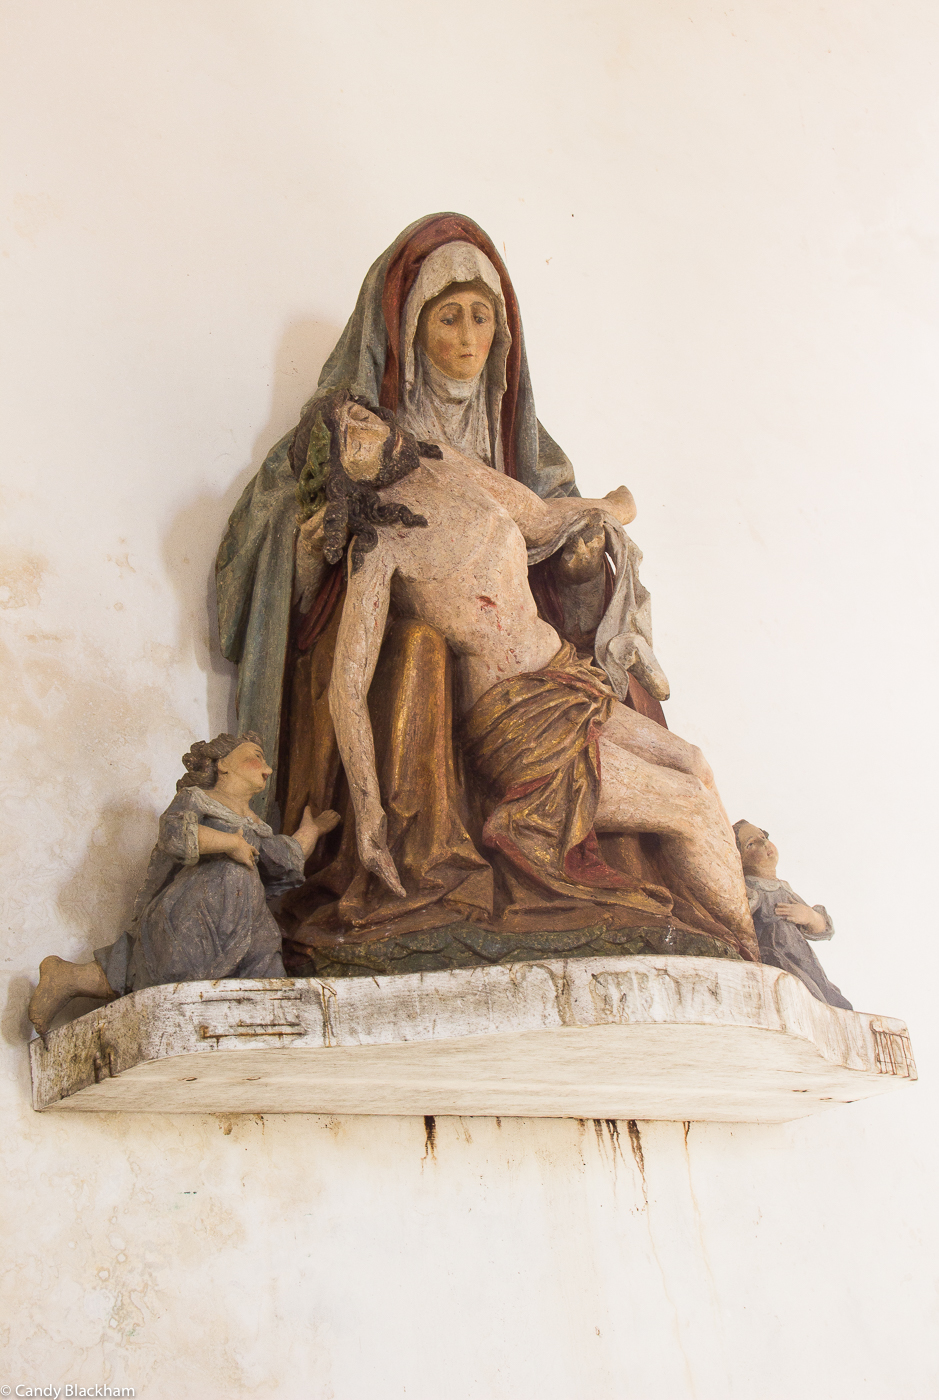 Pieta in the Church of St Melar, Locmelar